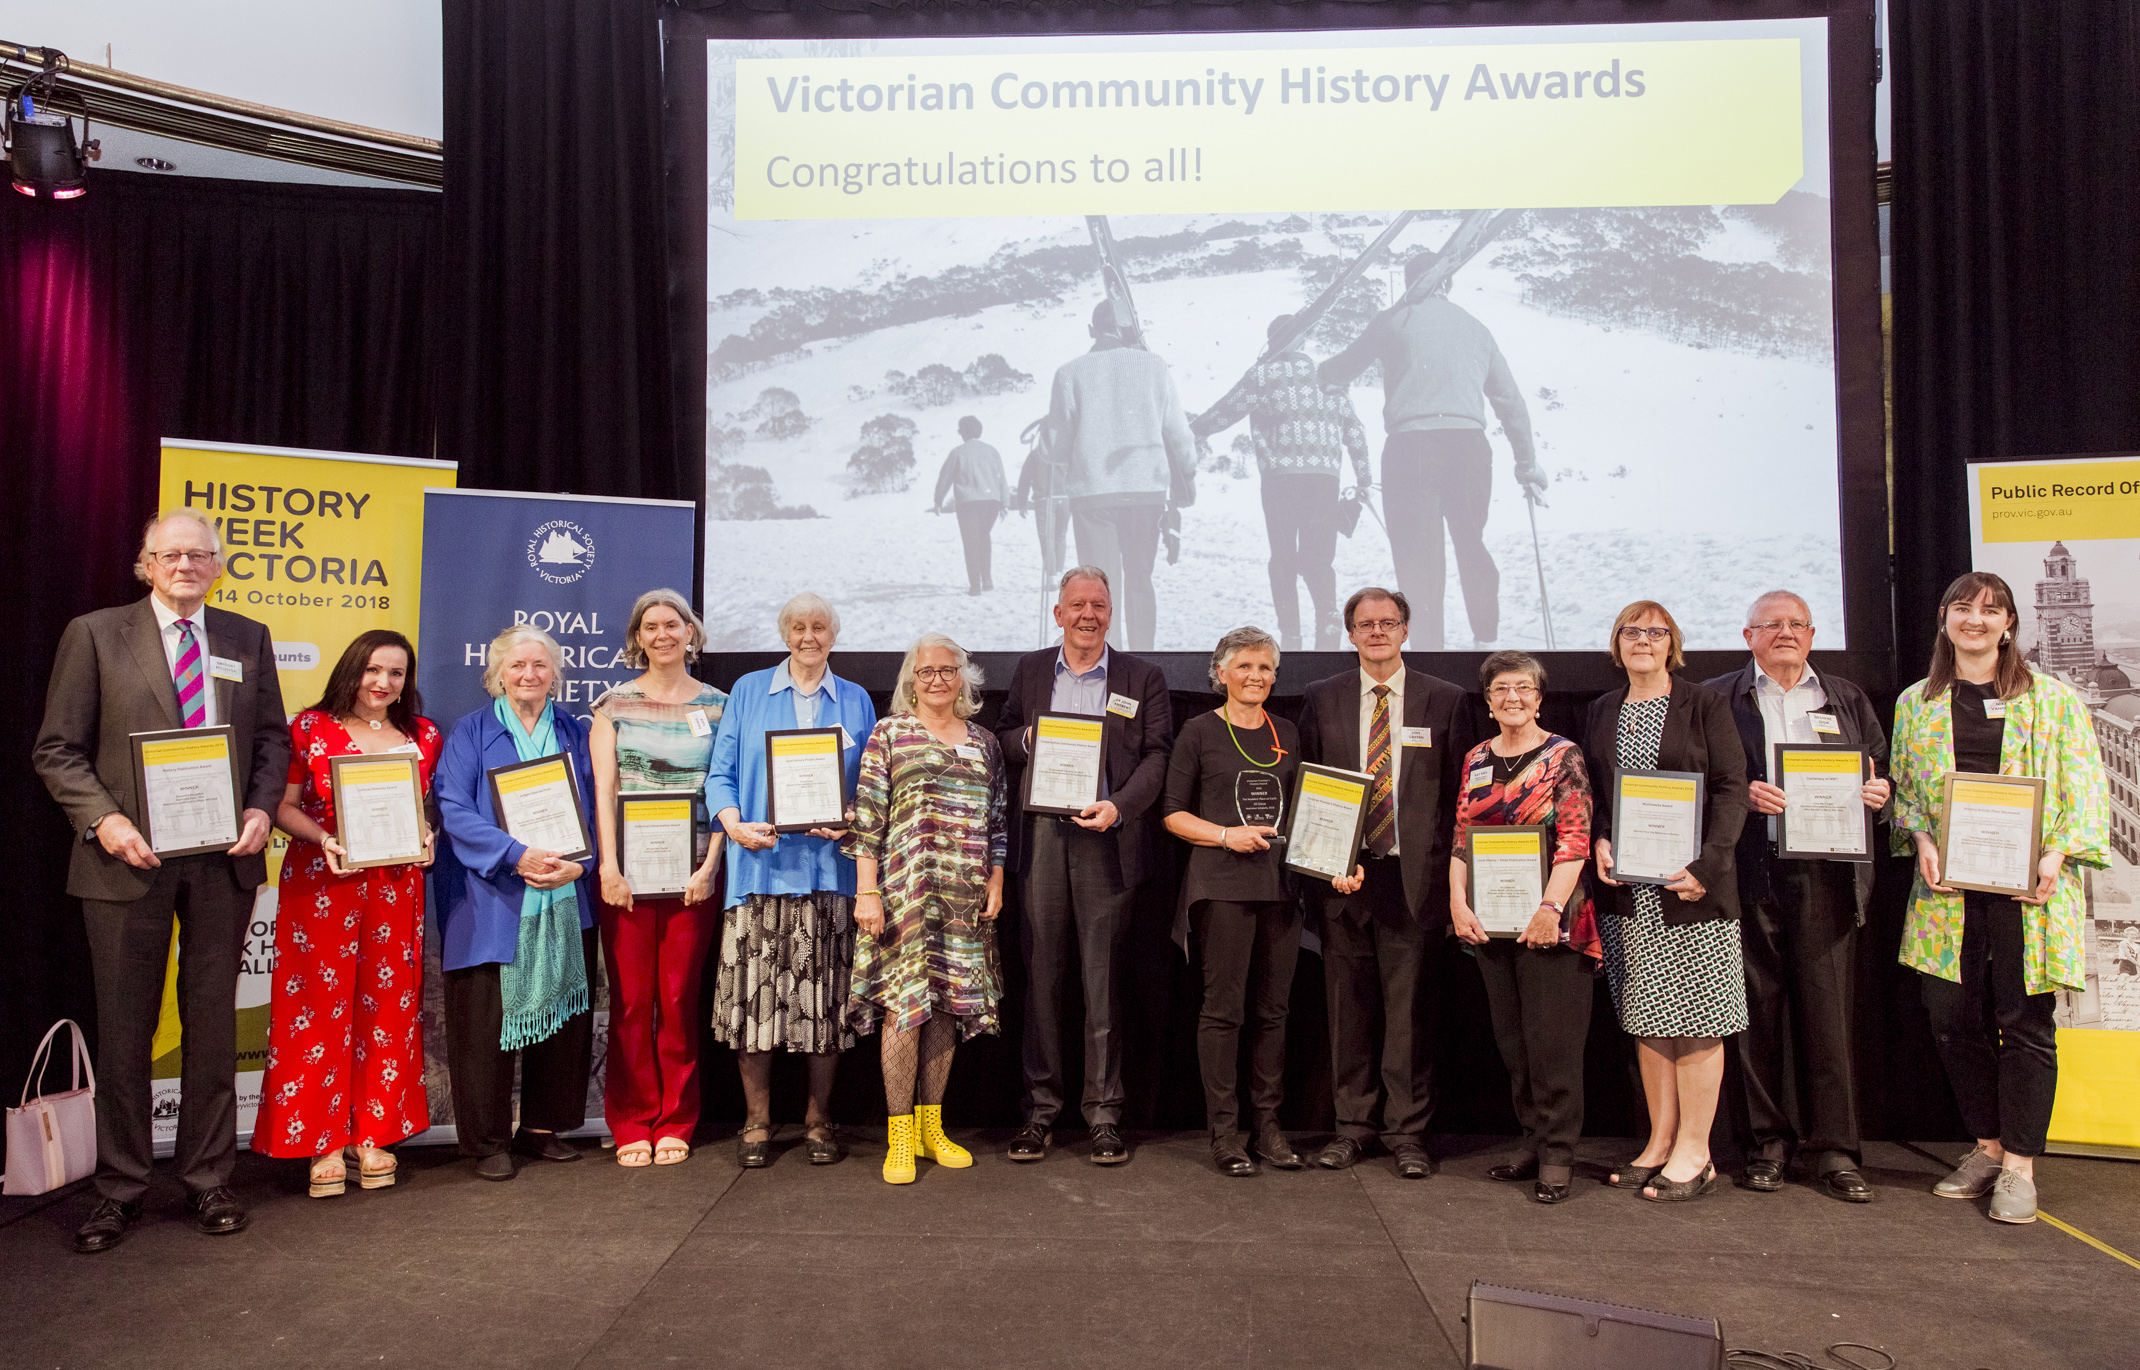 All Victorian Community History Award winners